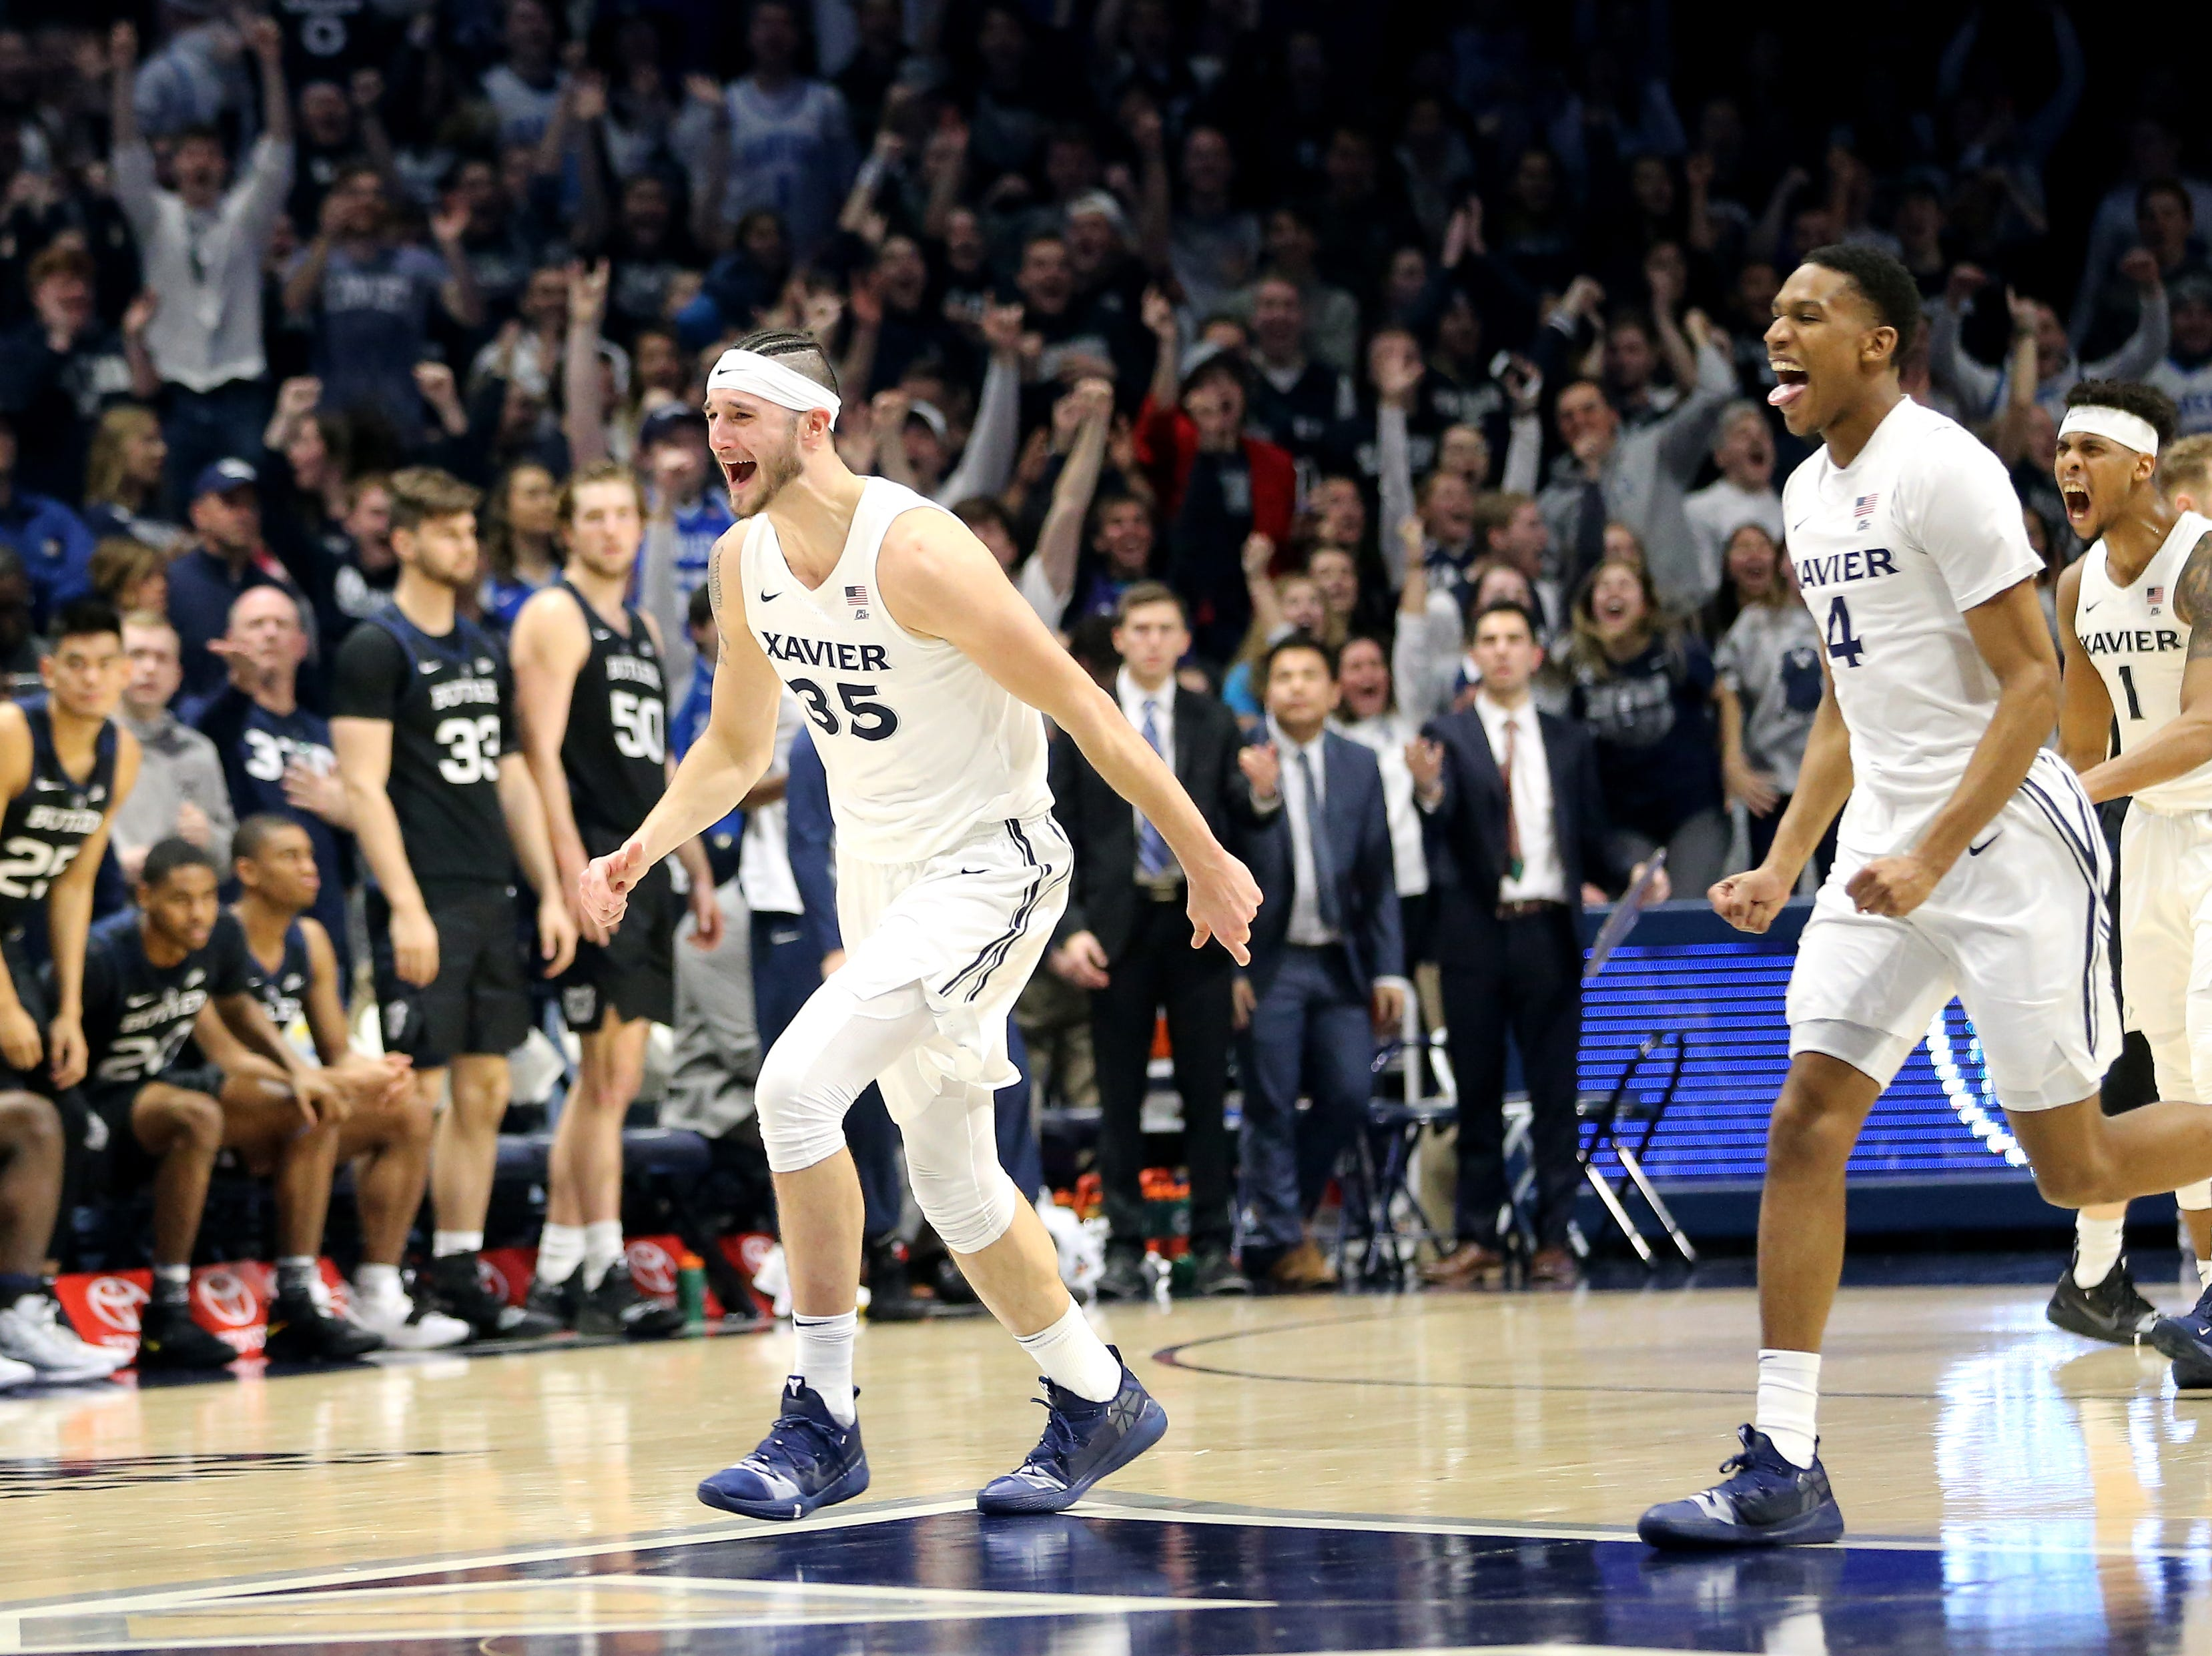 Xavier Musketeers forward Zach Hankins (35), Xavier Musketeers guard Elias Harden (4) and Xavier Musketeers guard Paul Scruggs (1) celebrate the win in the second half of an NCAA college basketball game, Sunday, Jan. 13, 2019, at Cintas Center in Cincinnati. Xavier Musketeers won 70-69.